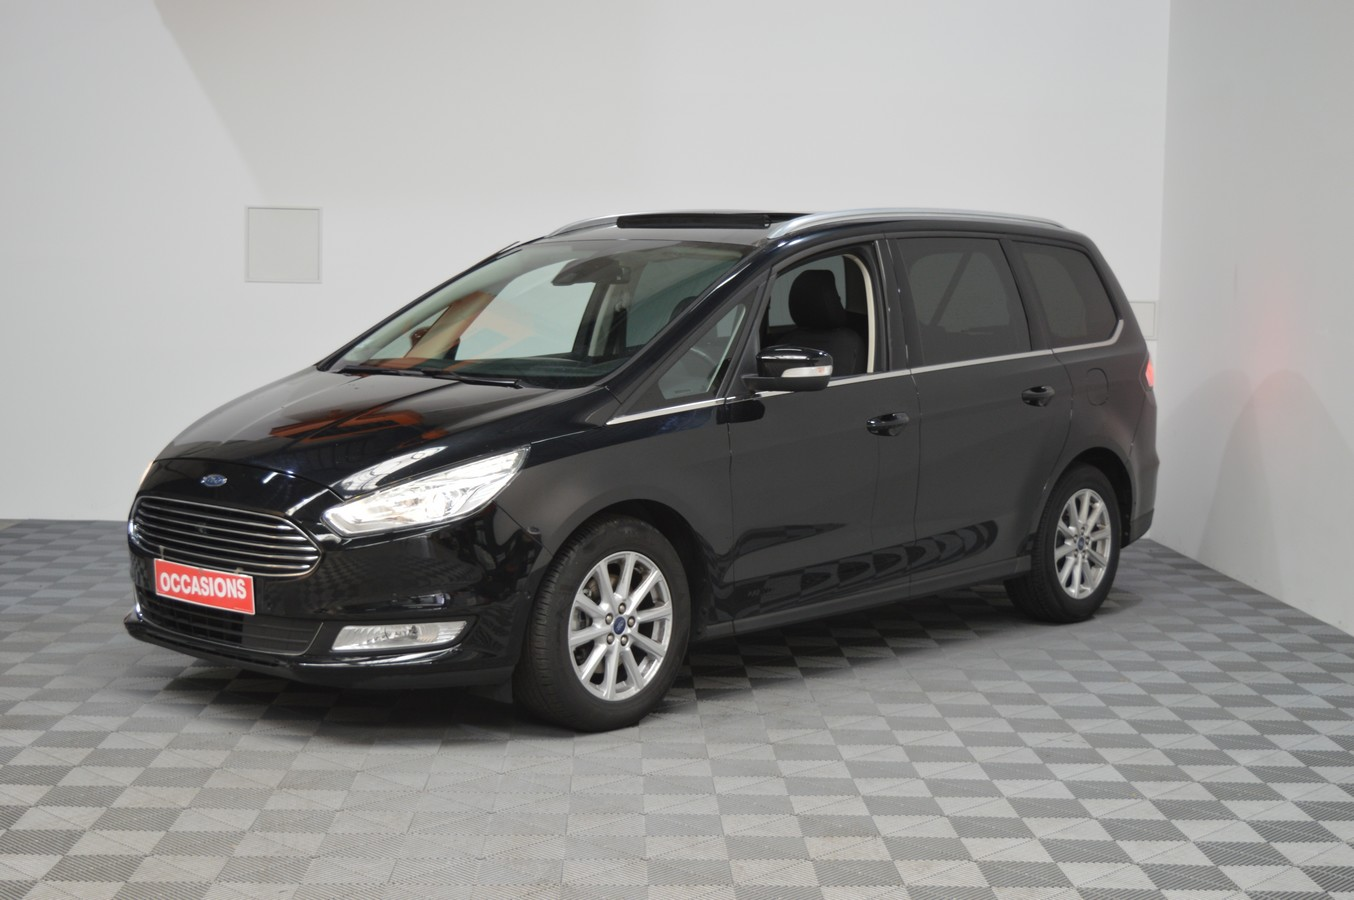 FORD GALAXY III TITANIUM TDCI 150 PS d'occasion